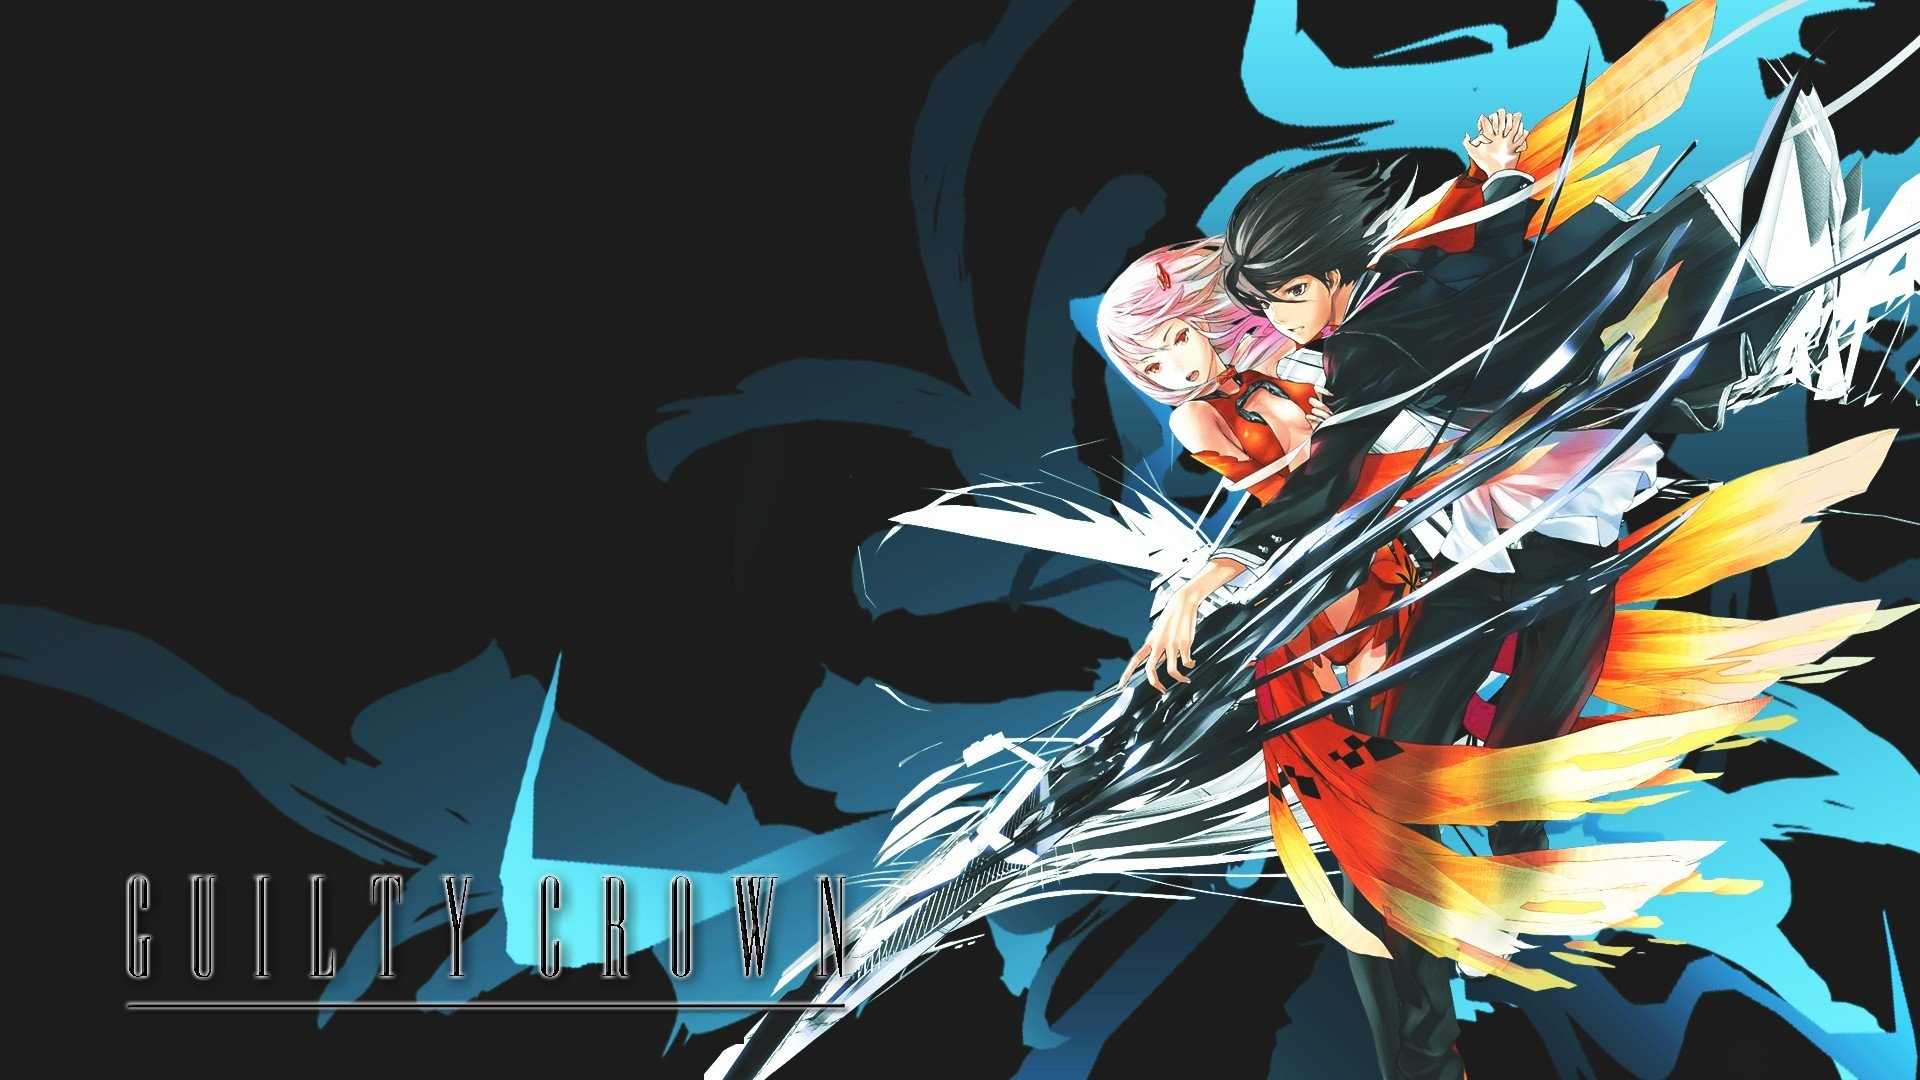 Guilty crown hd wallpaper background image 1920x1080 - Anime wallpaper full hd ...